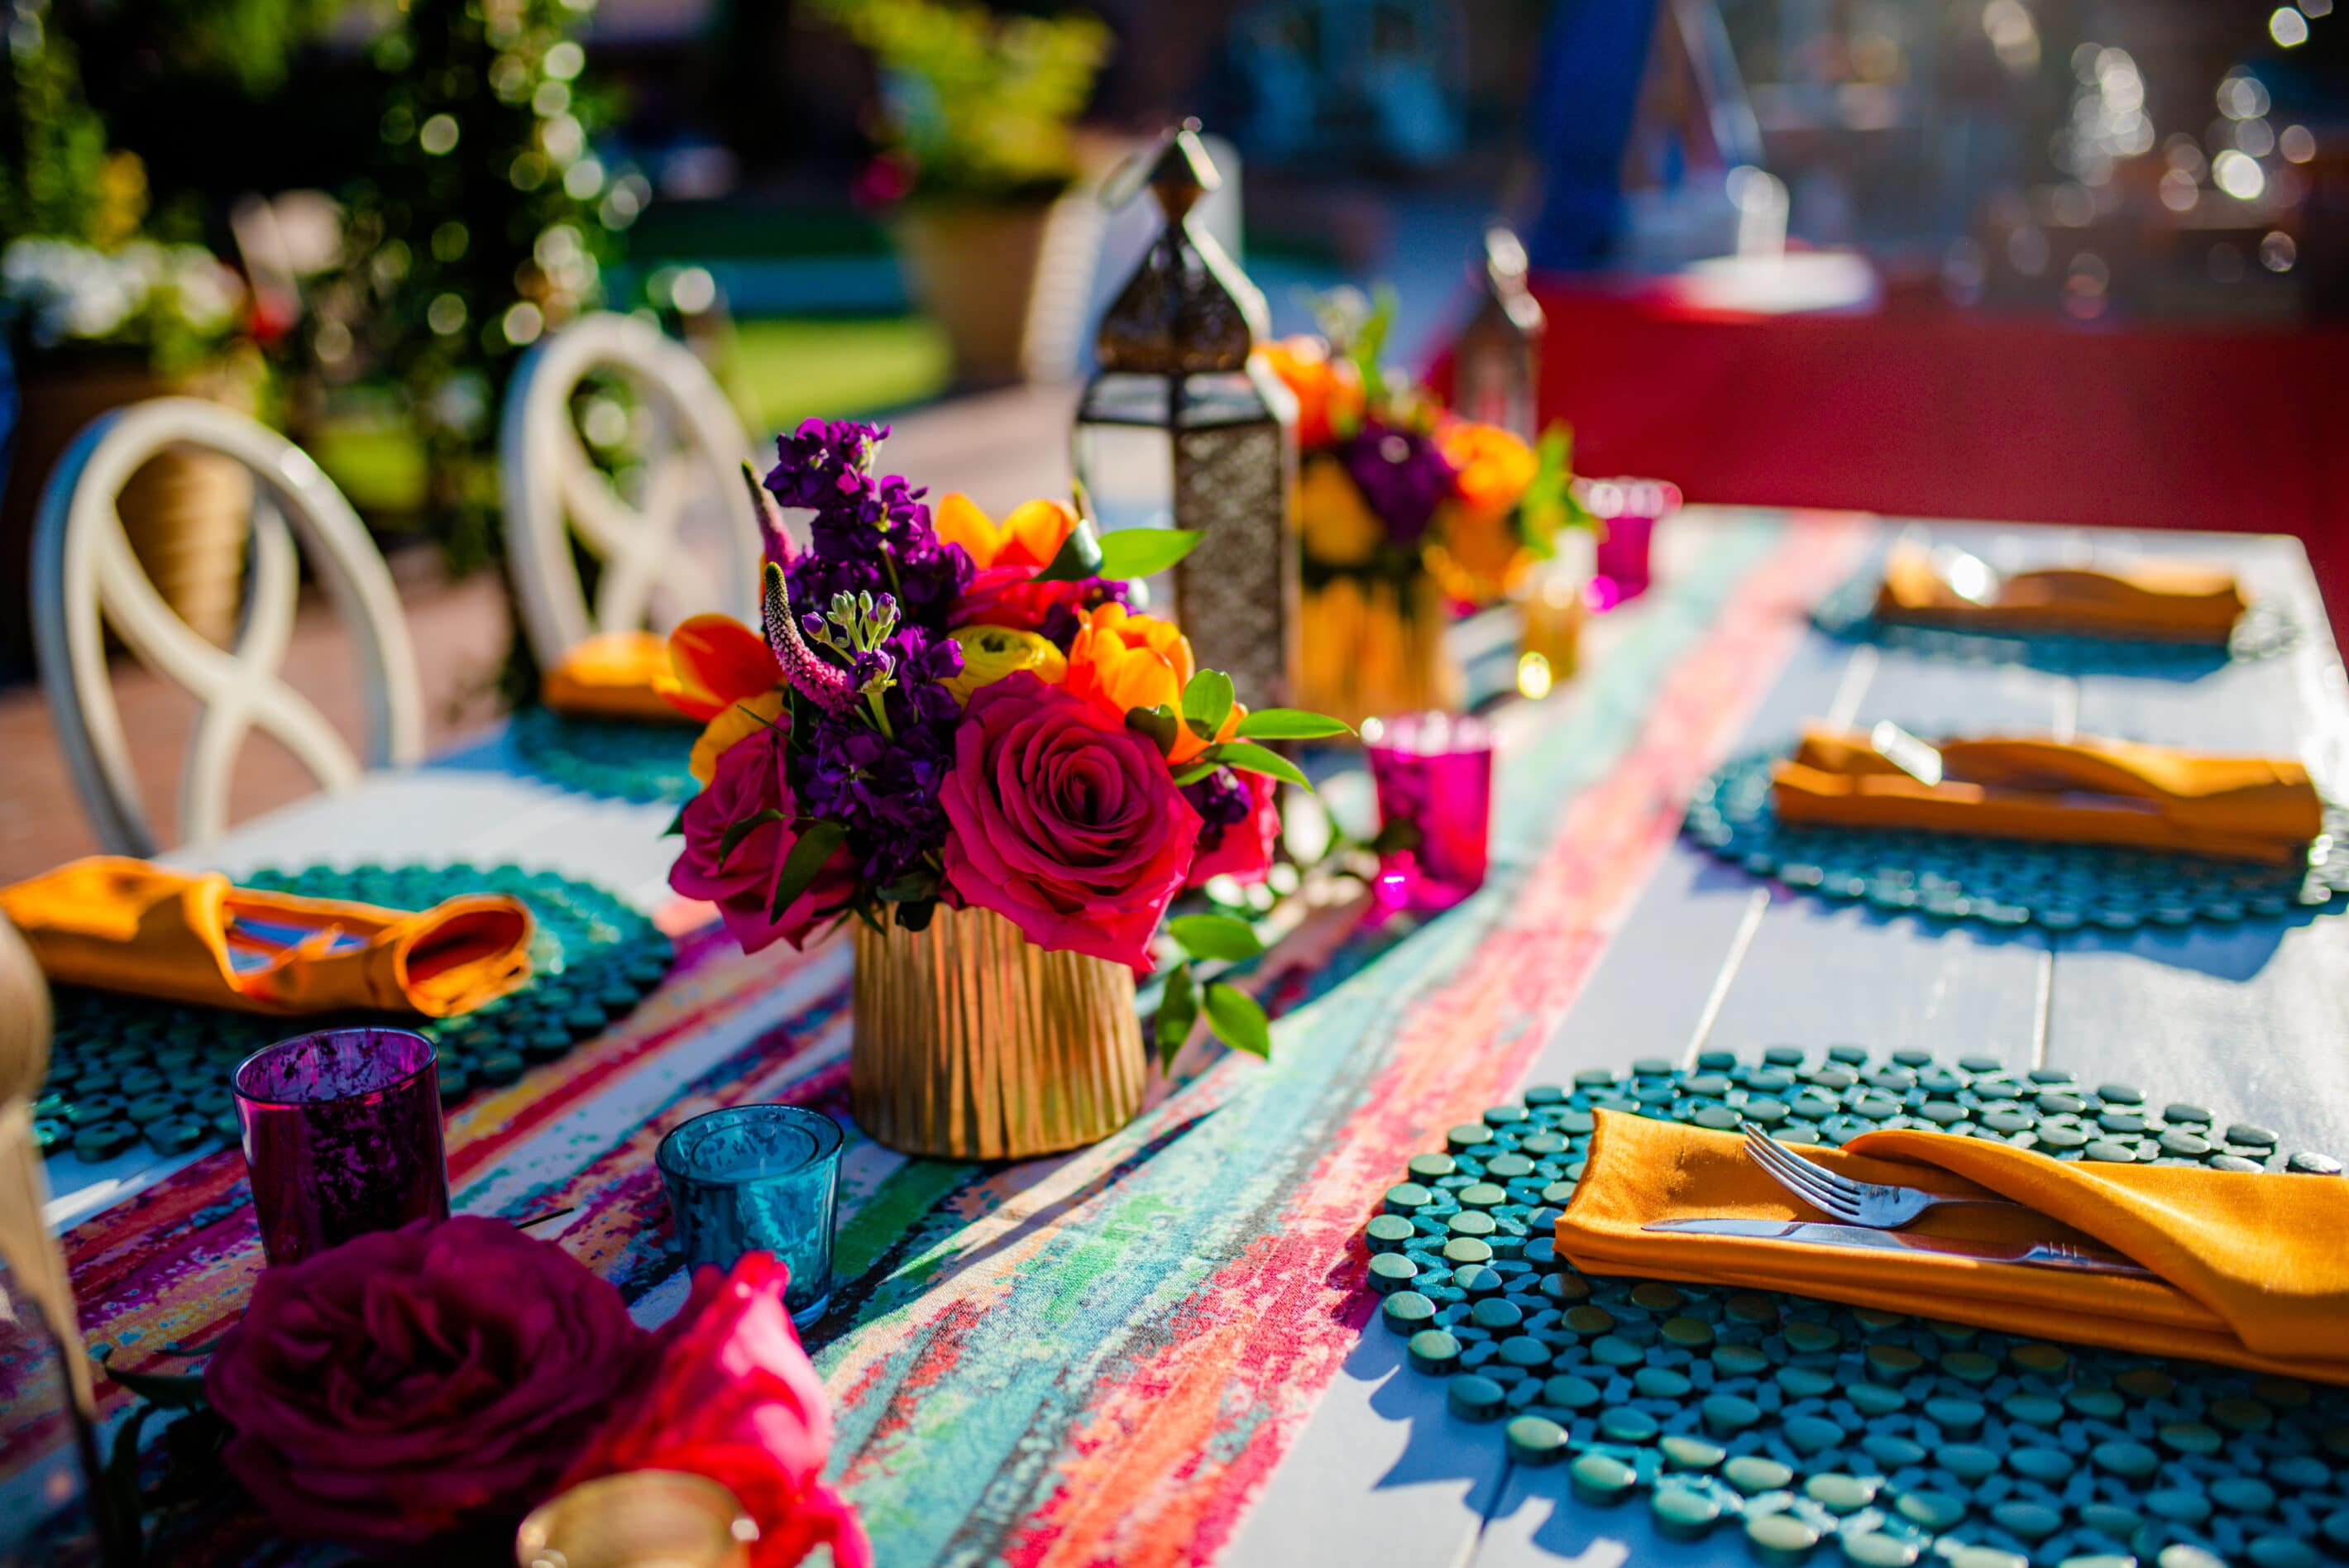 Bright florals in gold vases, serape like upscale runners, southwestern accents and other Mexican influenced decor items create a beautiful Upscale Fiesta corporate dinner event.